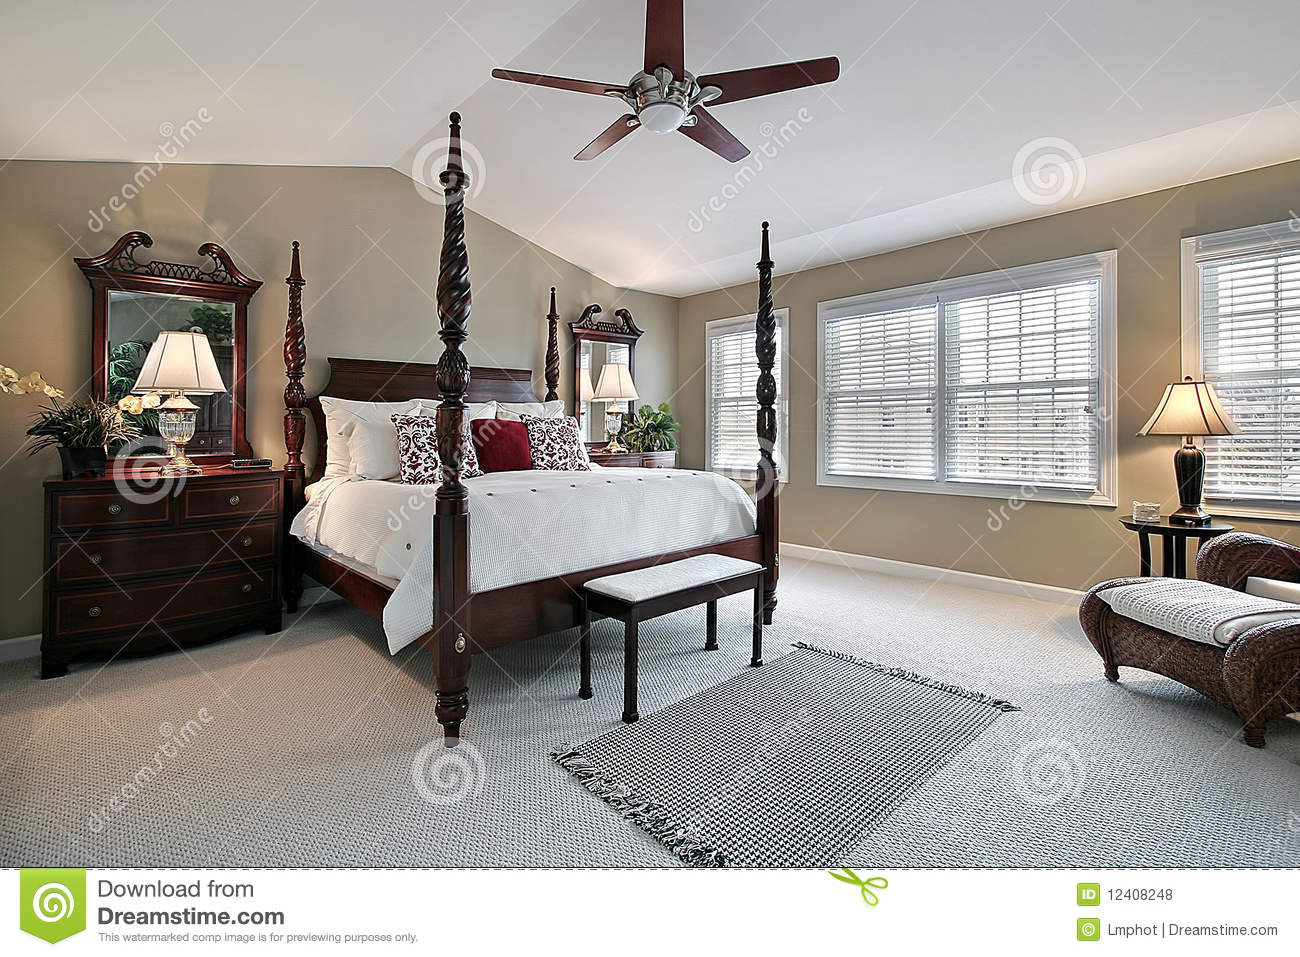 Royalty Free Stock Photos Master Bedroom Dark Wood Furniture Image12408248 on Luxury Townhome Floor Plans